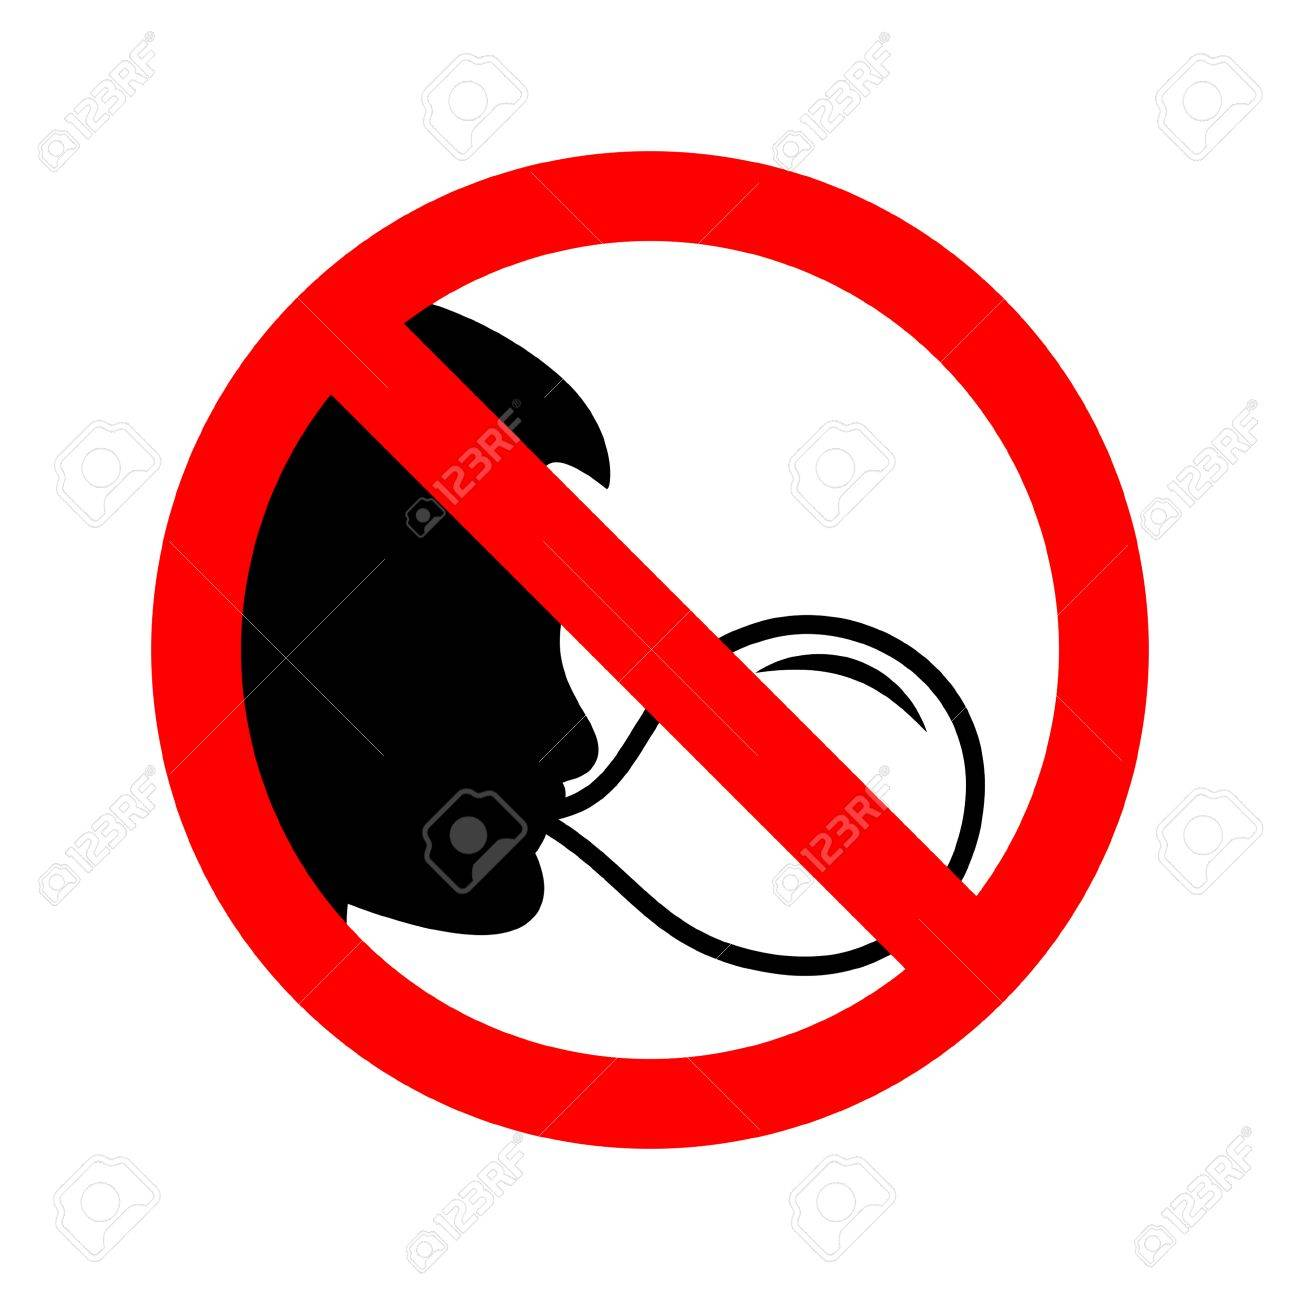 No chewing gum sign vector illustration..